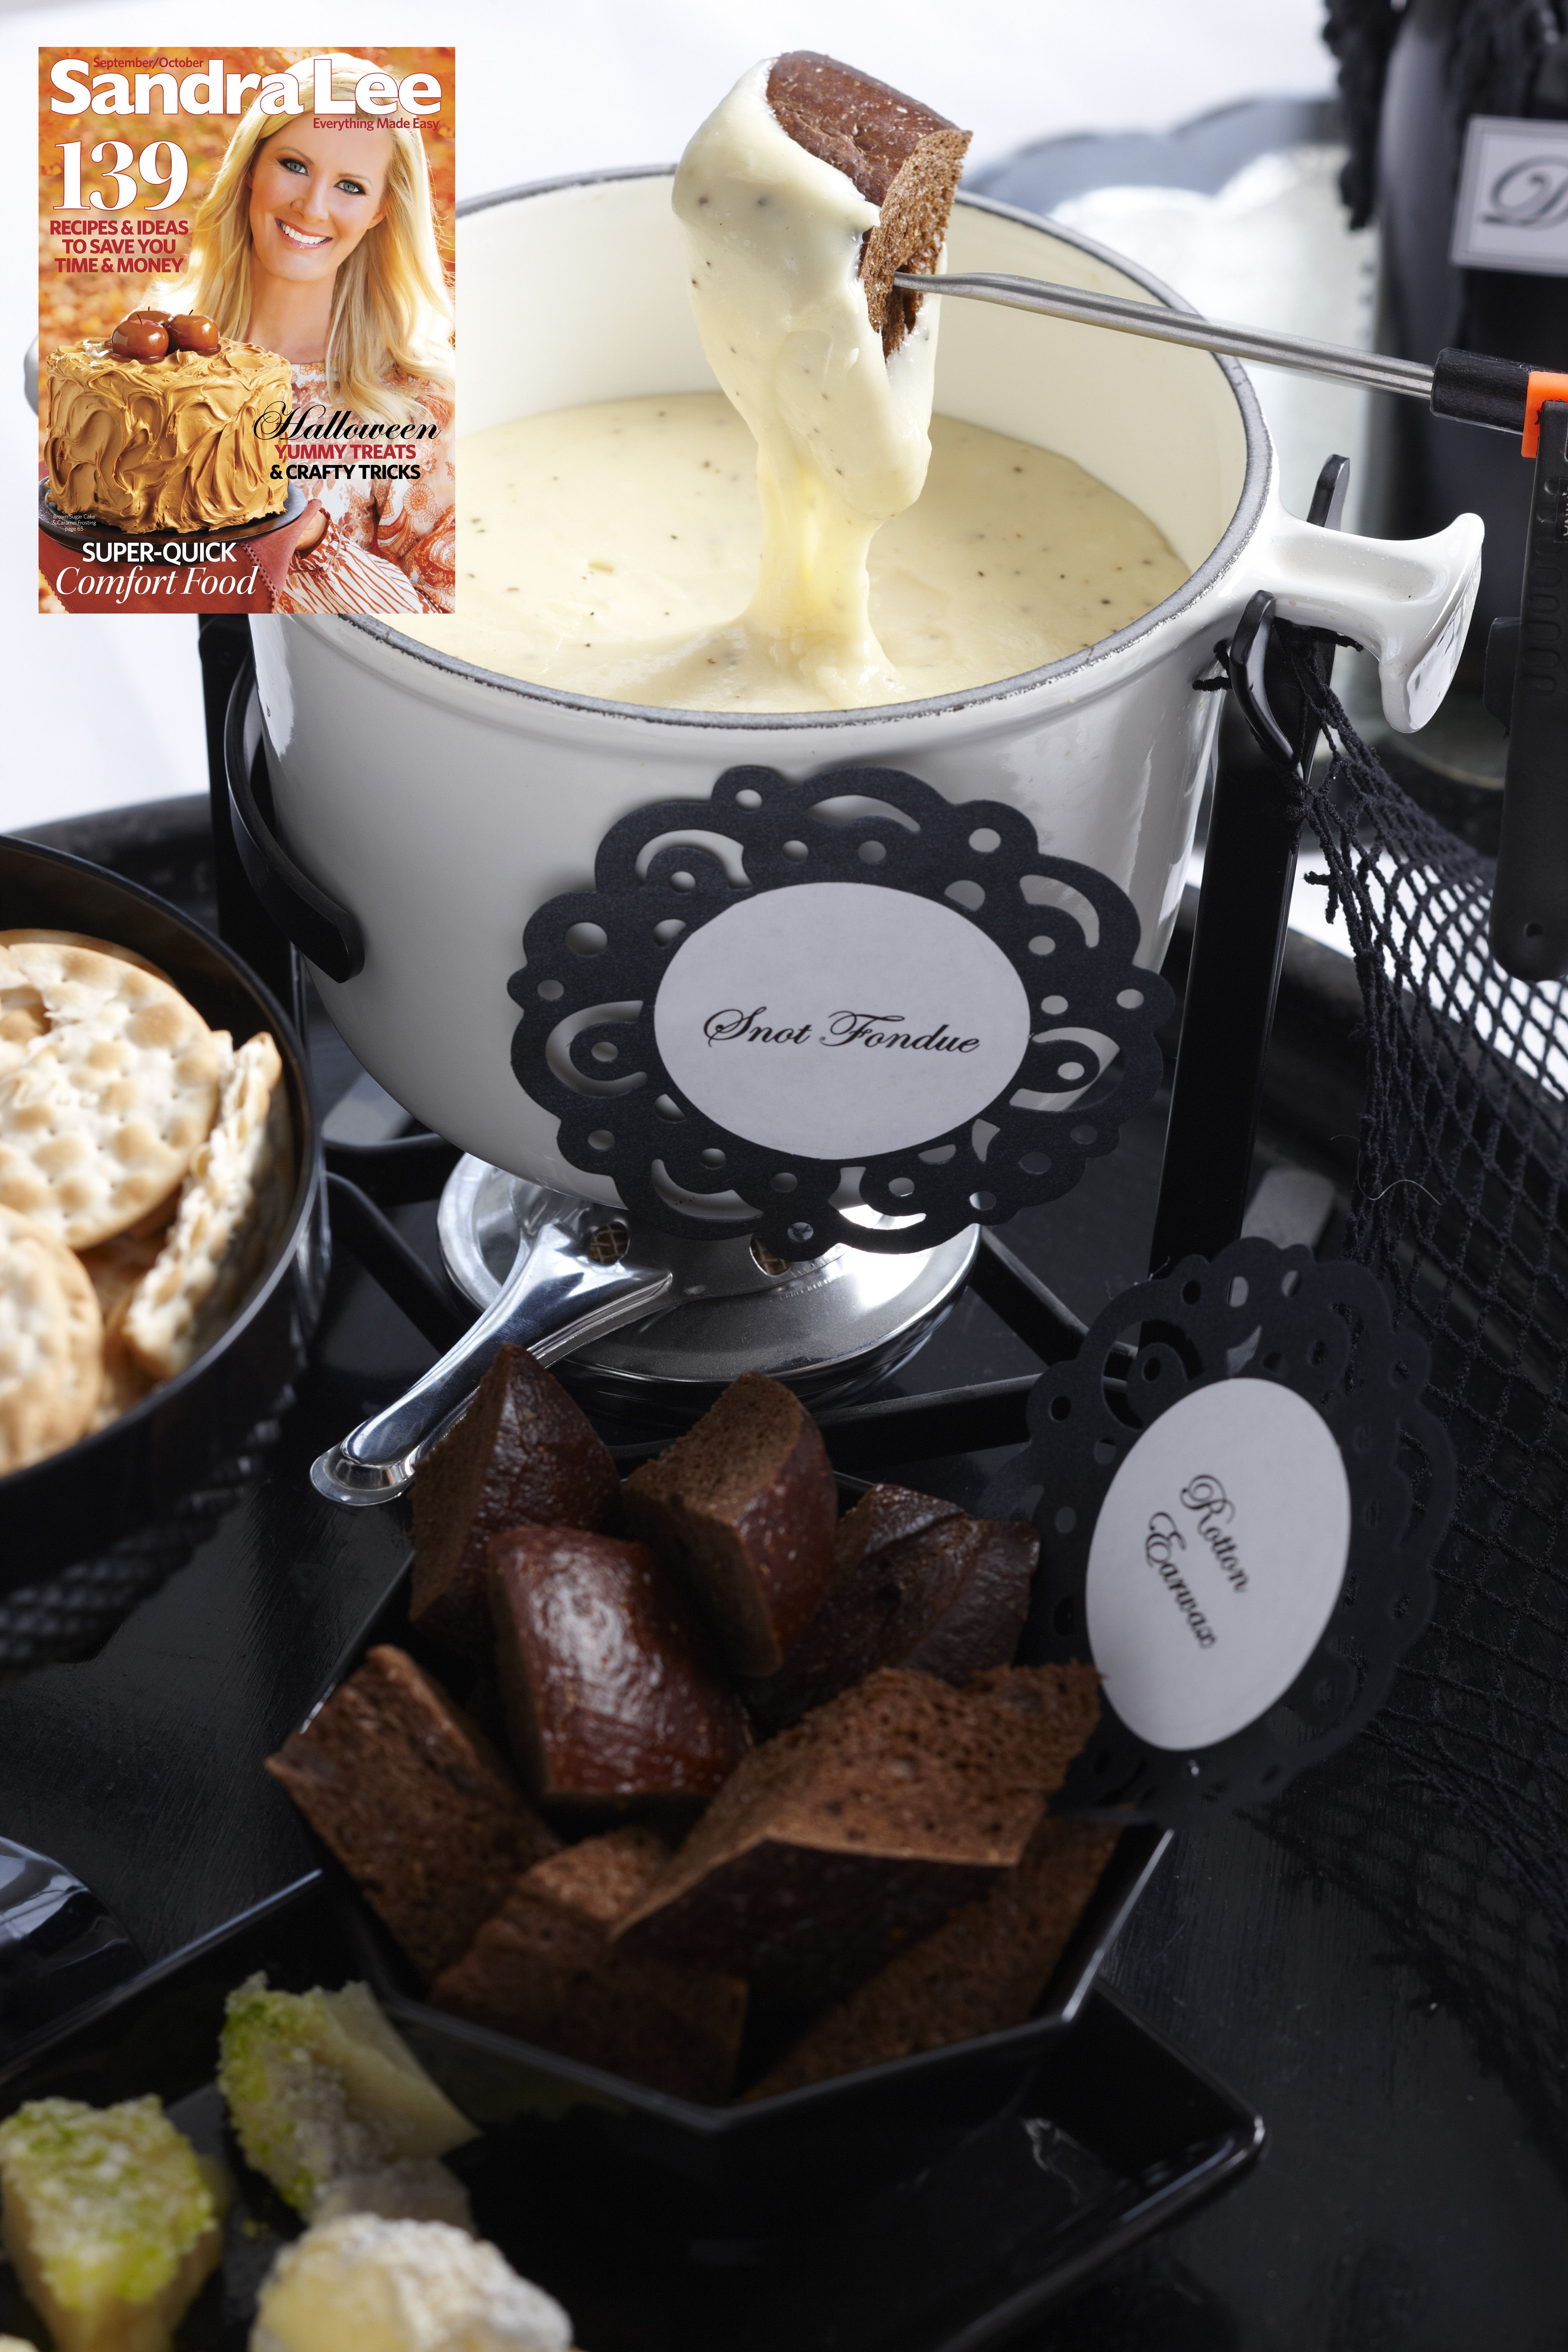 fiendish fondue from the sandra lee magazine | sandra lee halloween